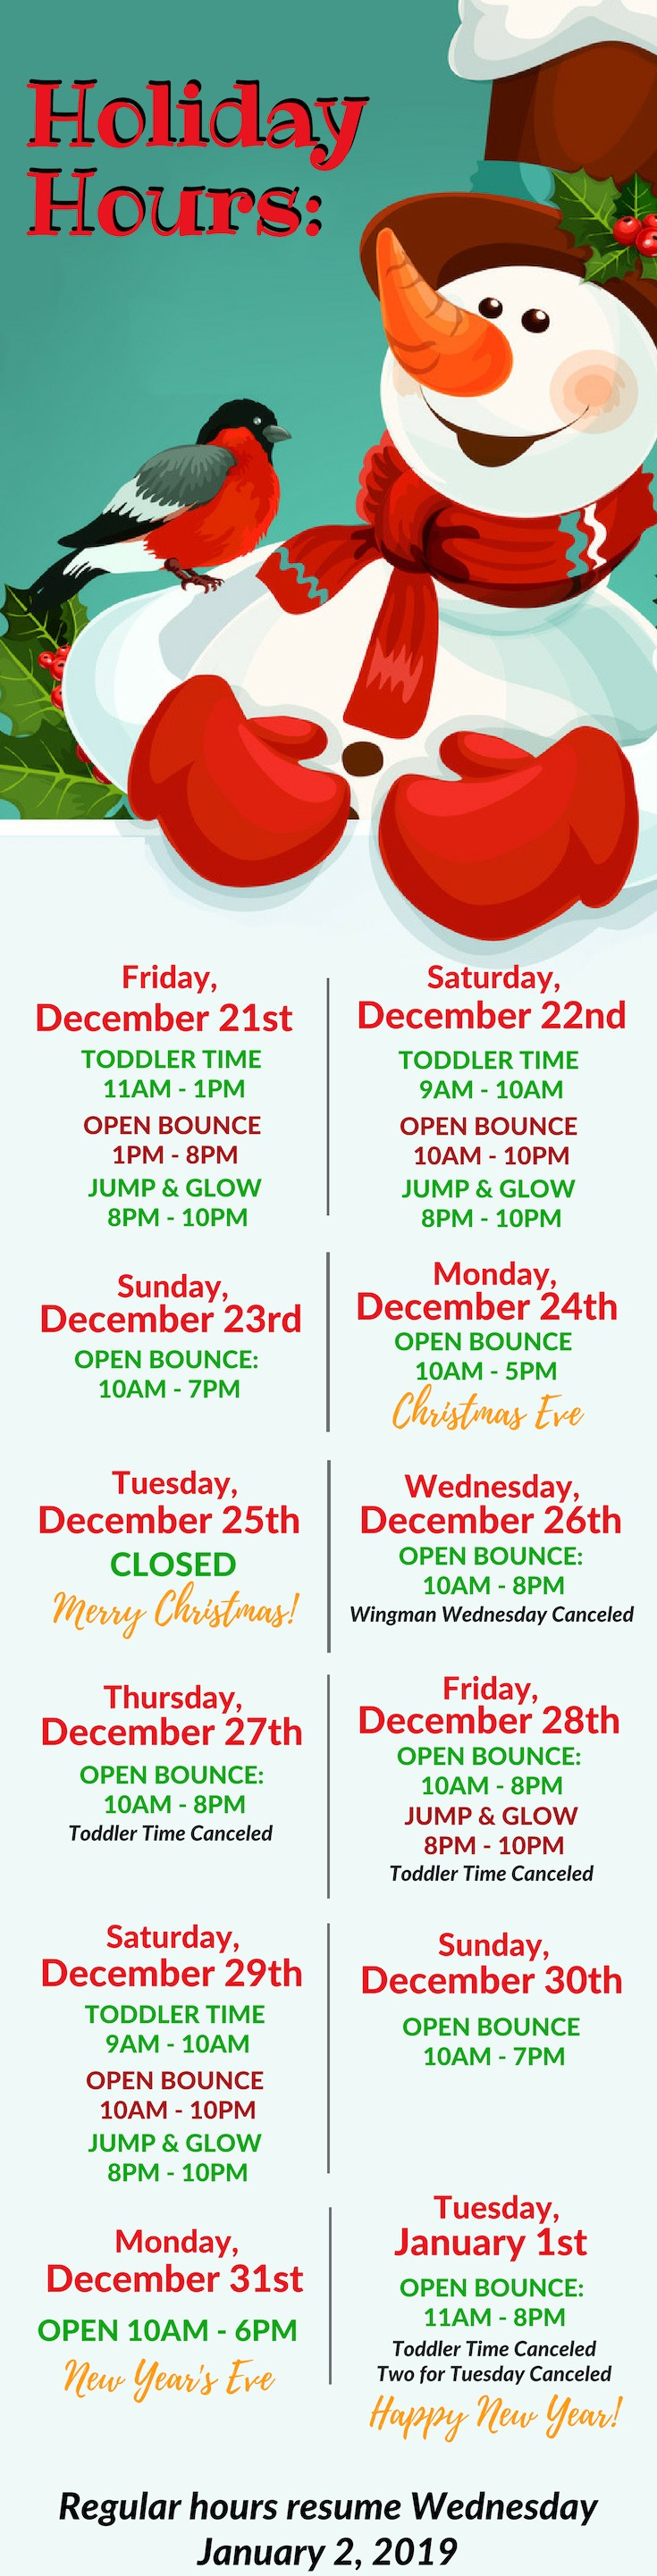 Open Christmas Eve, closed Christmas Day. Open New Year's Eve and New Year's Day!